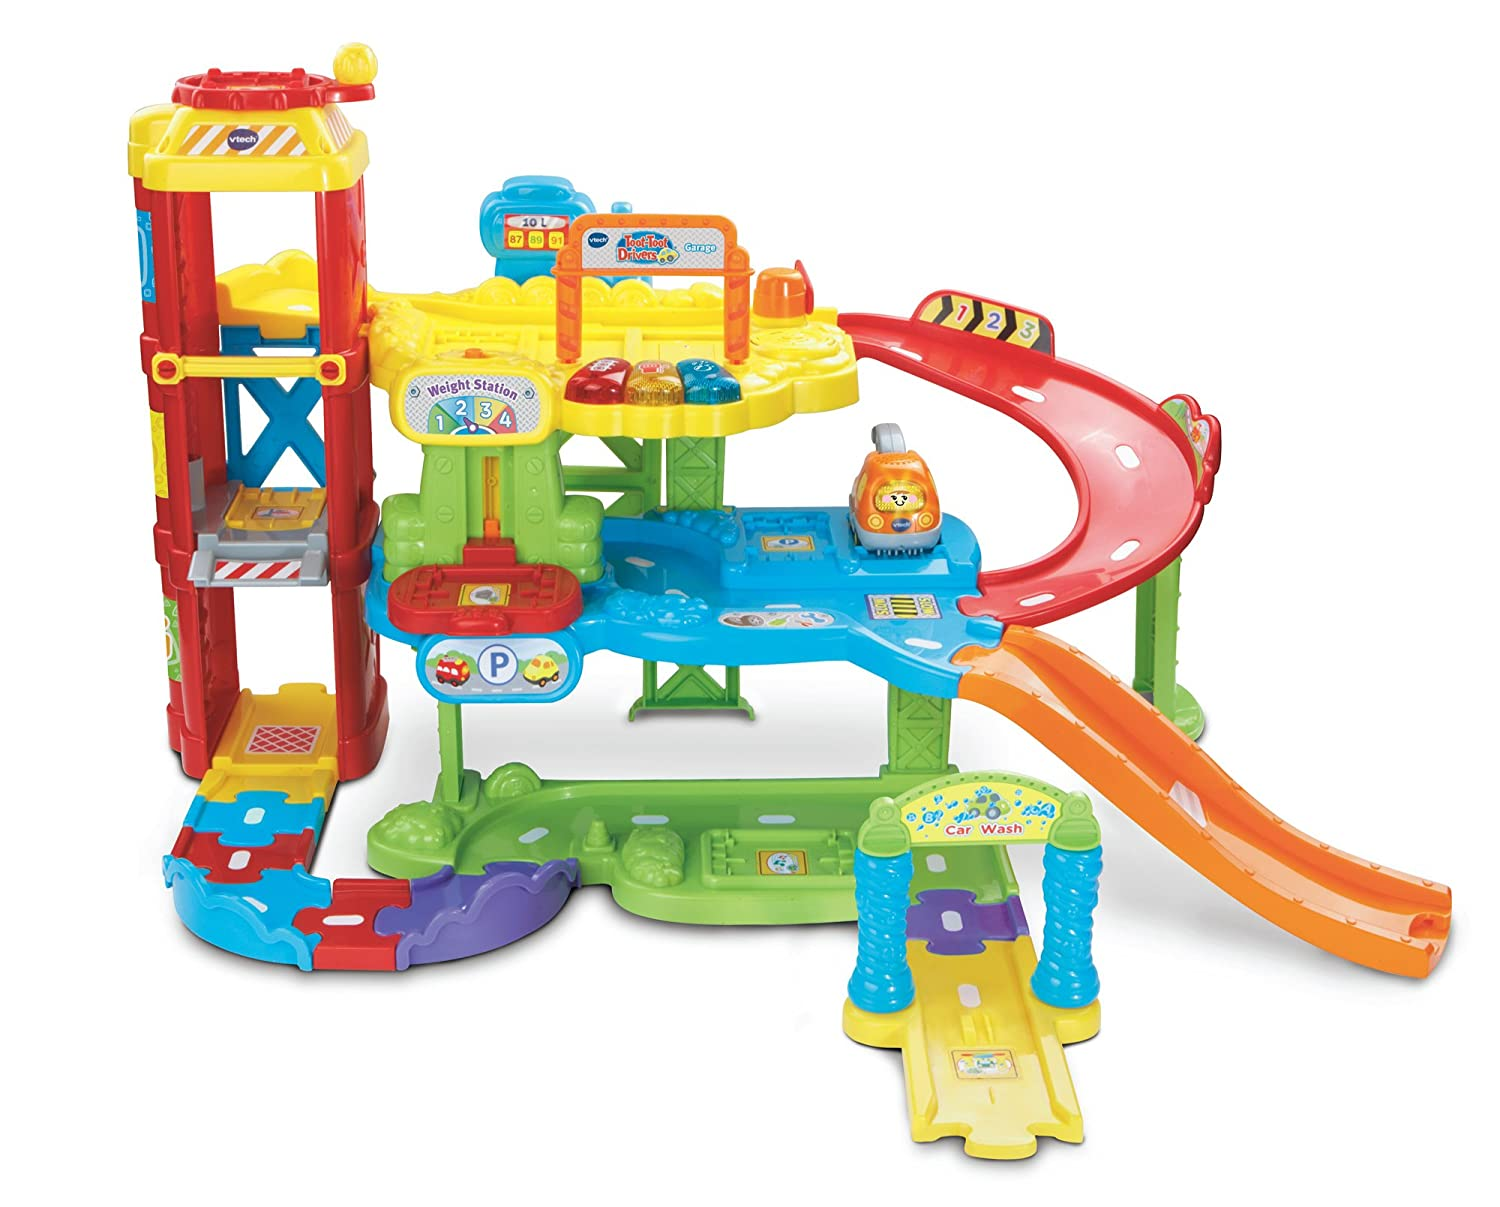 VTech Baby Toot-Toot Drivers Garage: Amazon.co.uk: Toys & Games